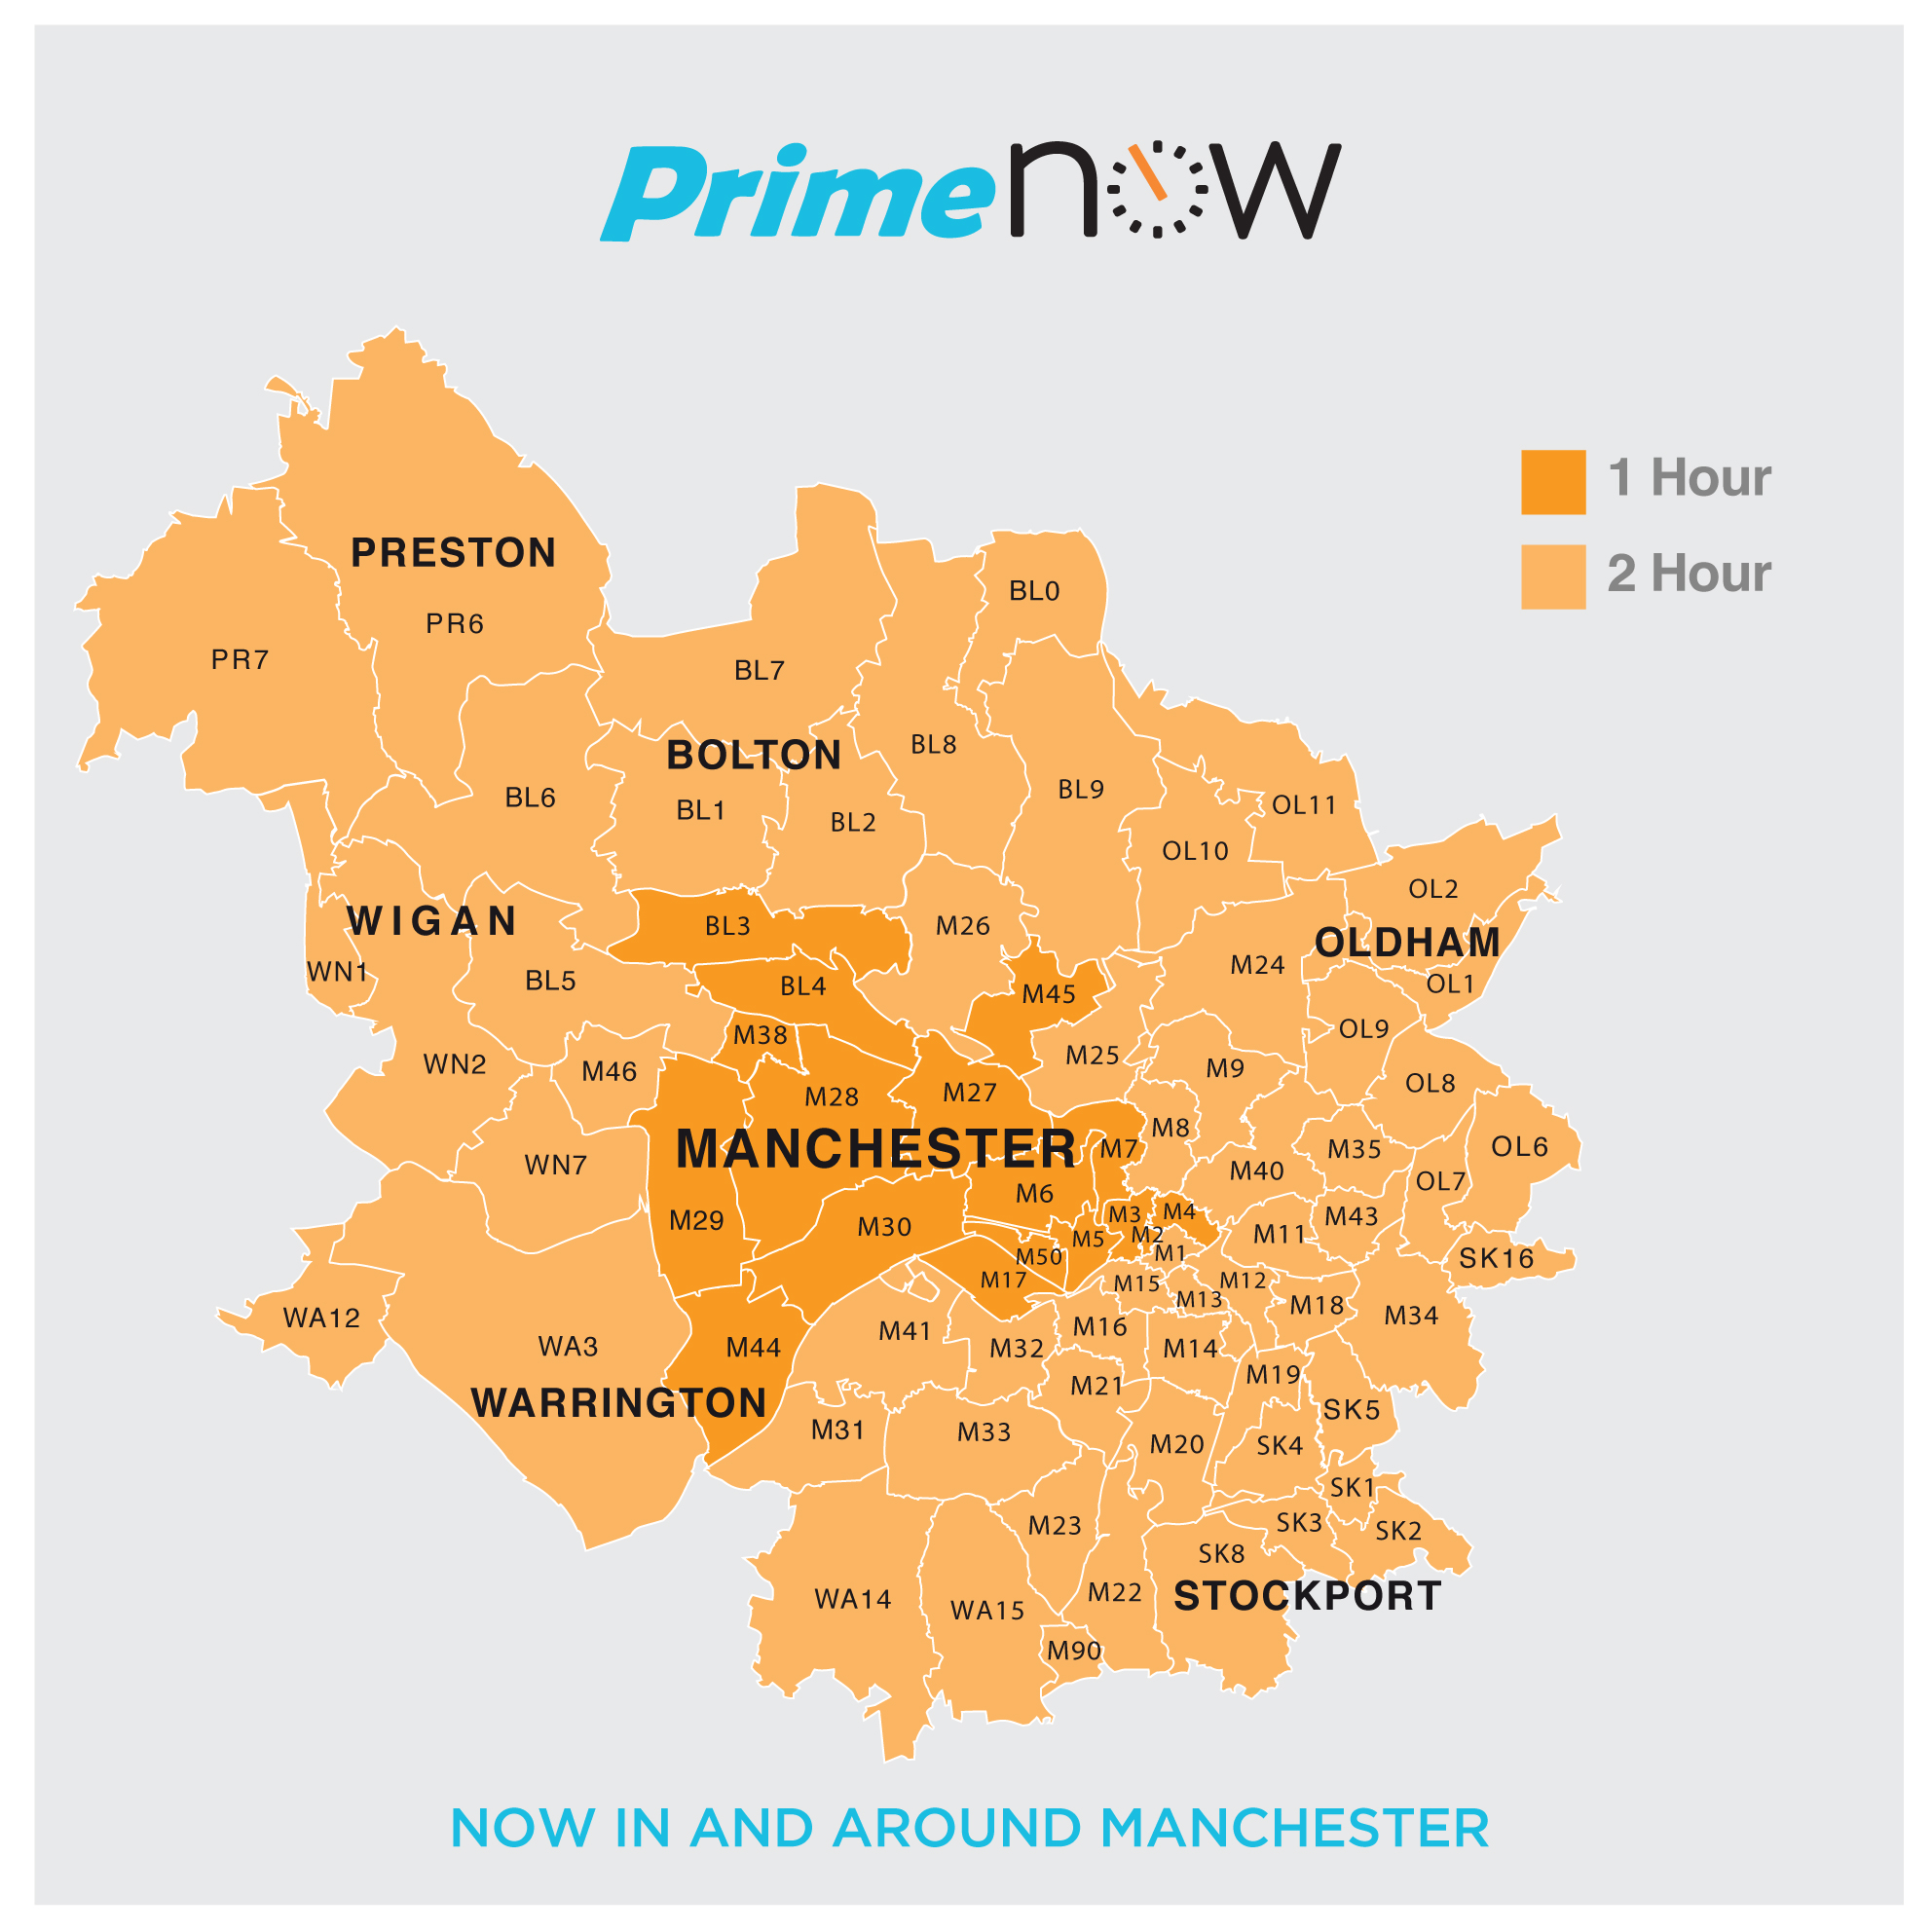 amazon expands prime now service in manchester and. Black Bedroom Furniture Sets. Home Design Ideas